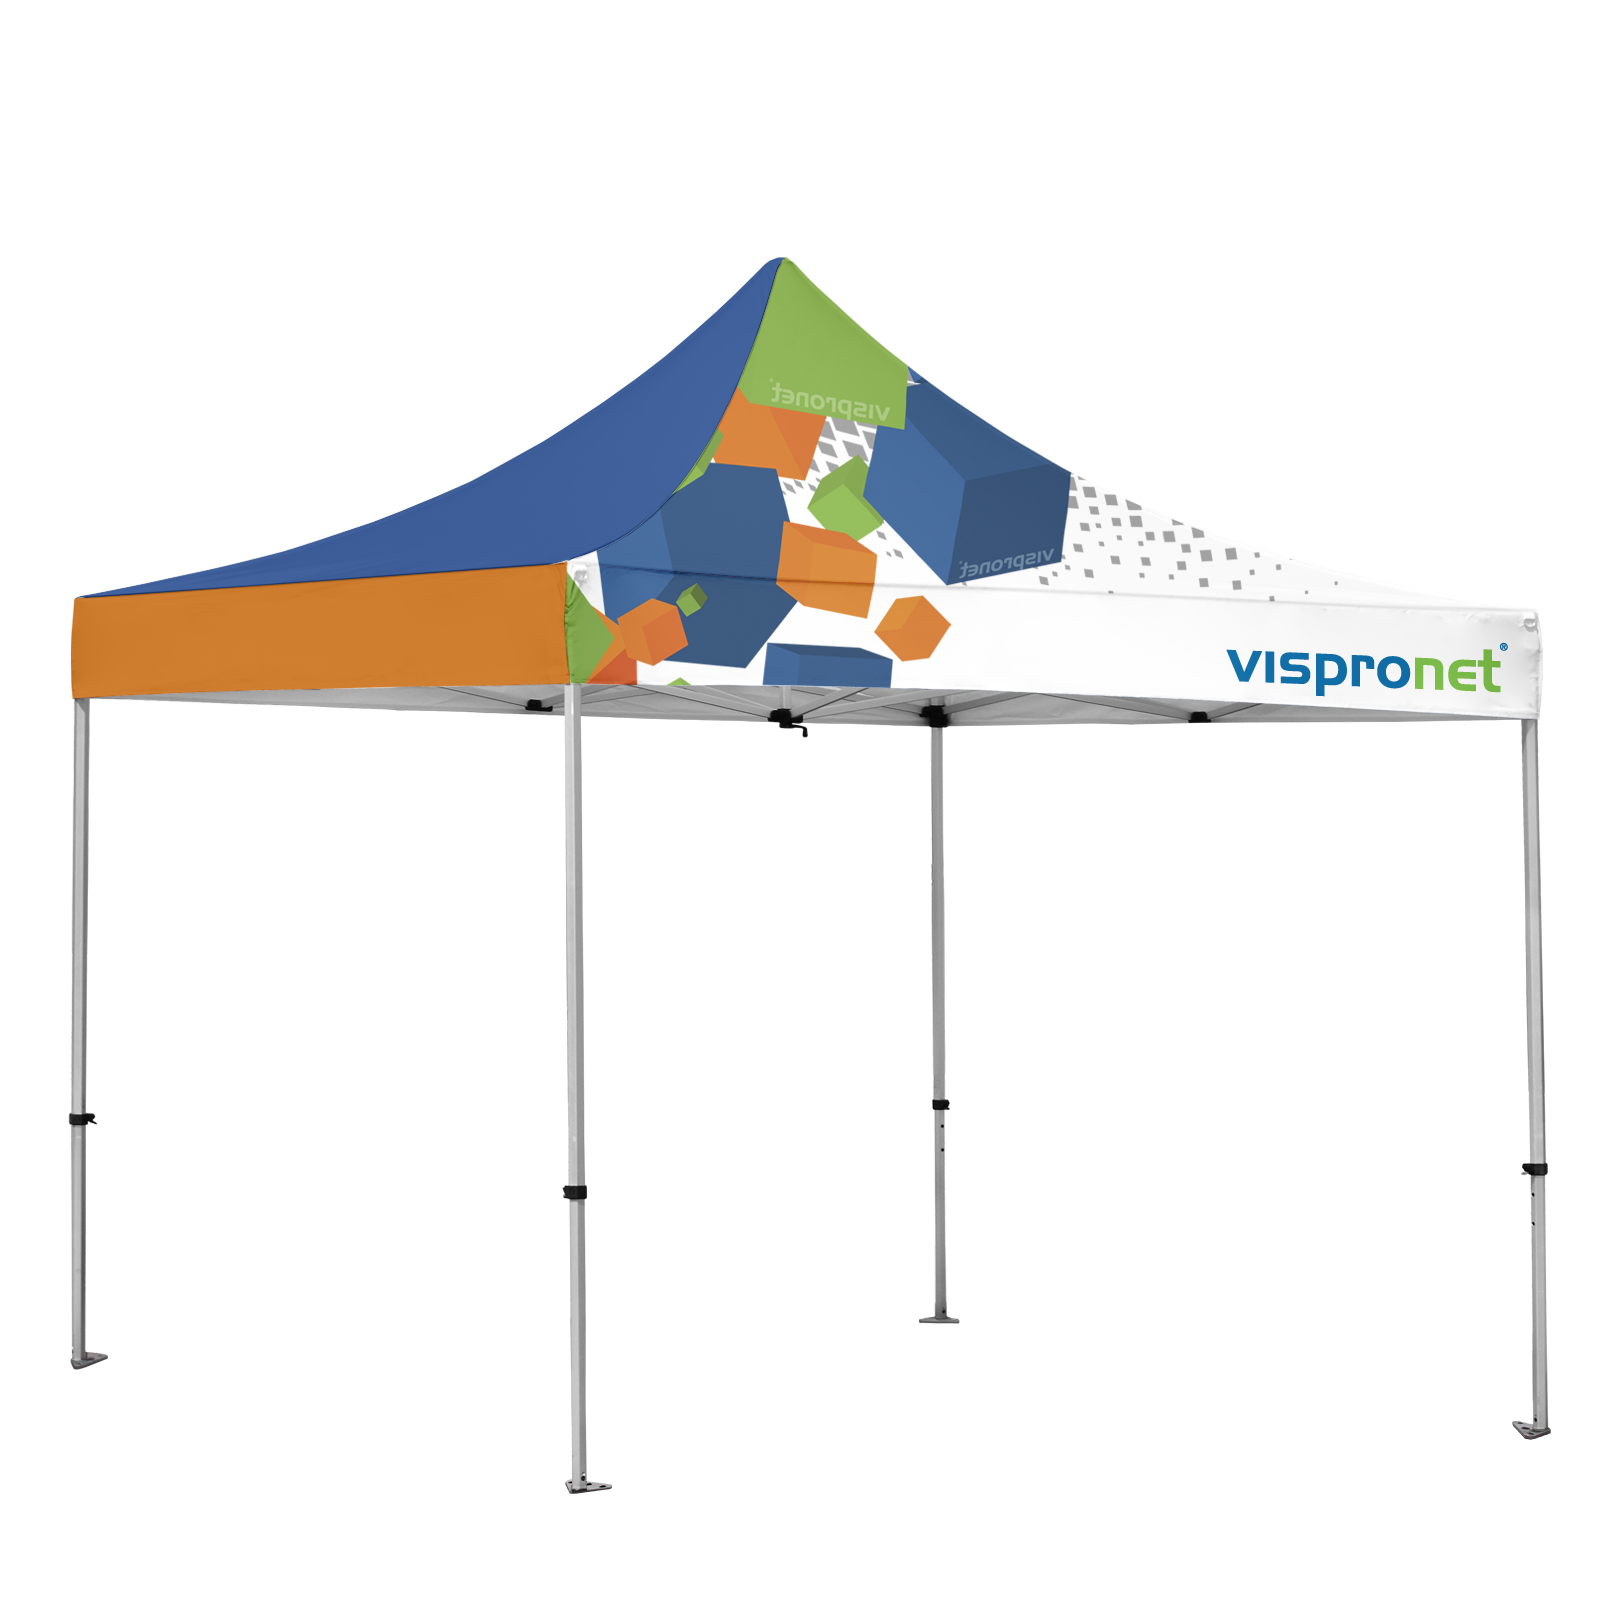 Custom Pop Up Tents for Events | #1 Trusted Supplier | Vispronet